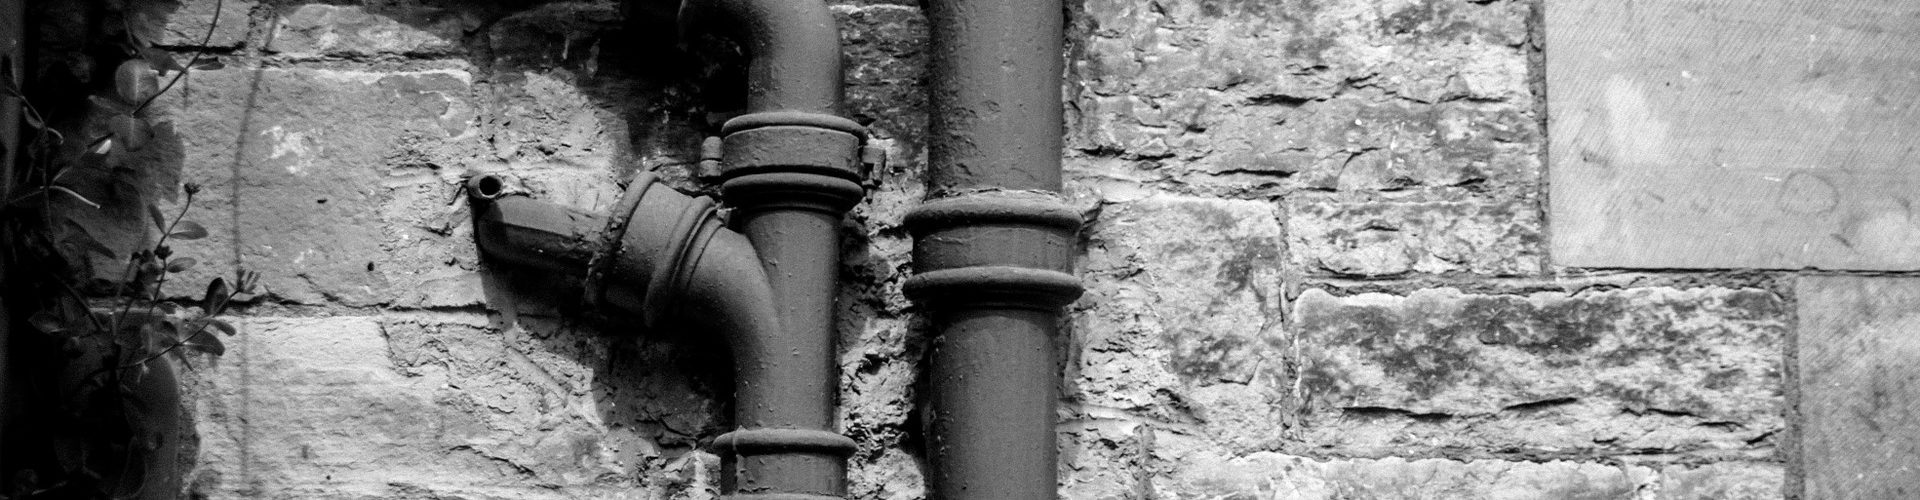 pipe-1454510_1920